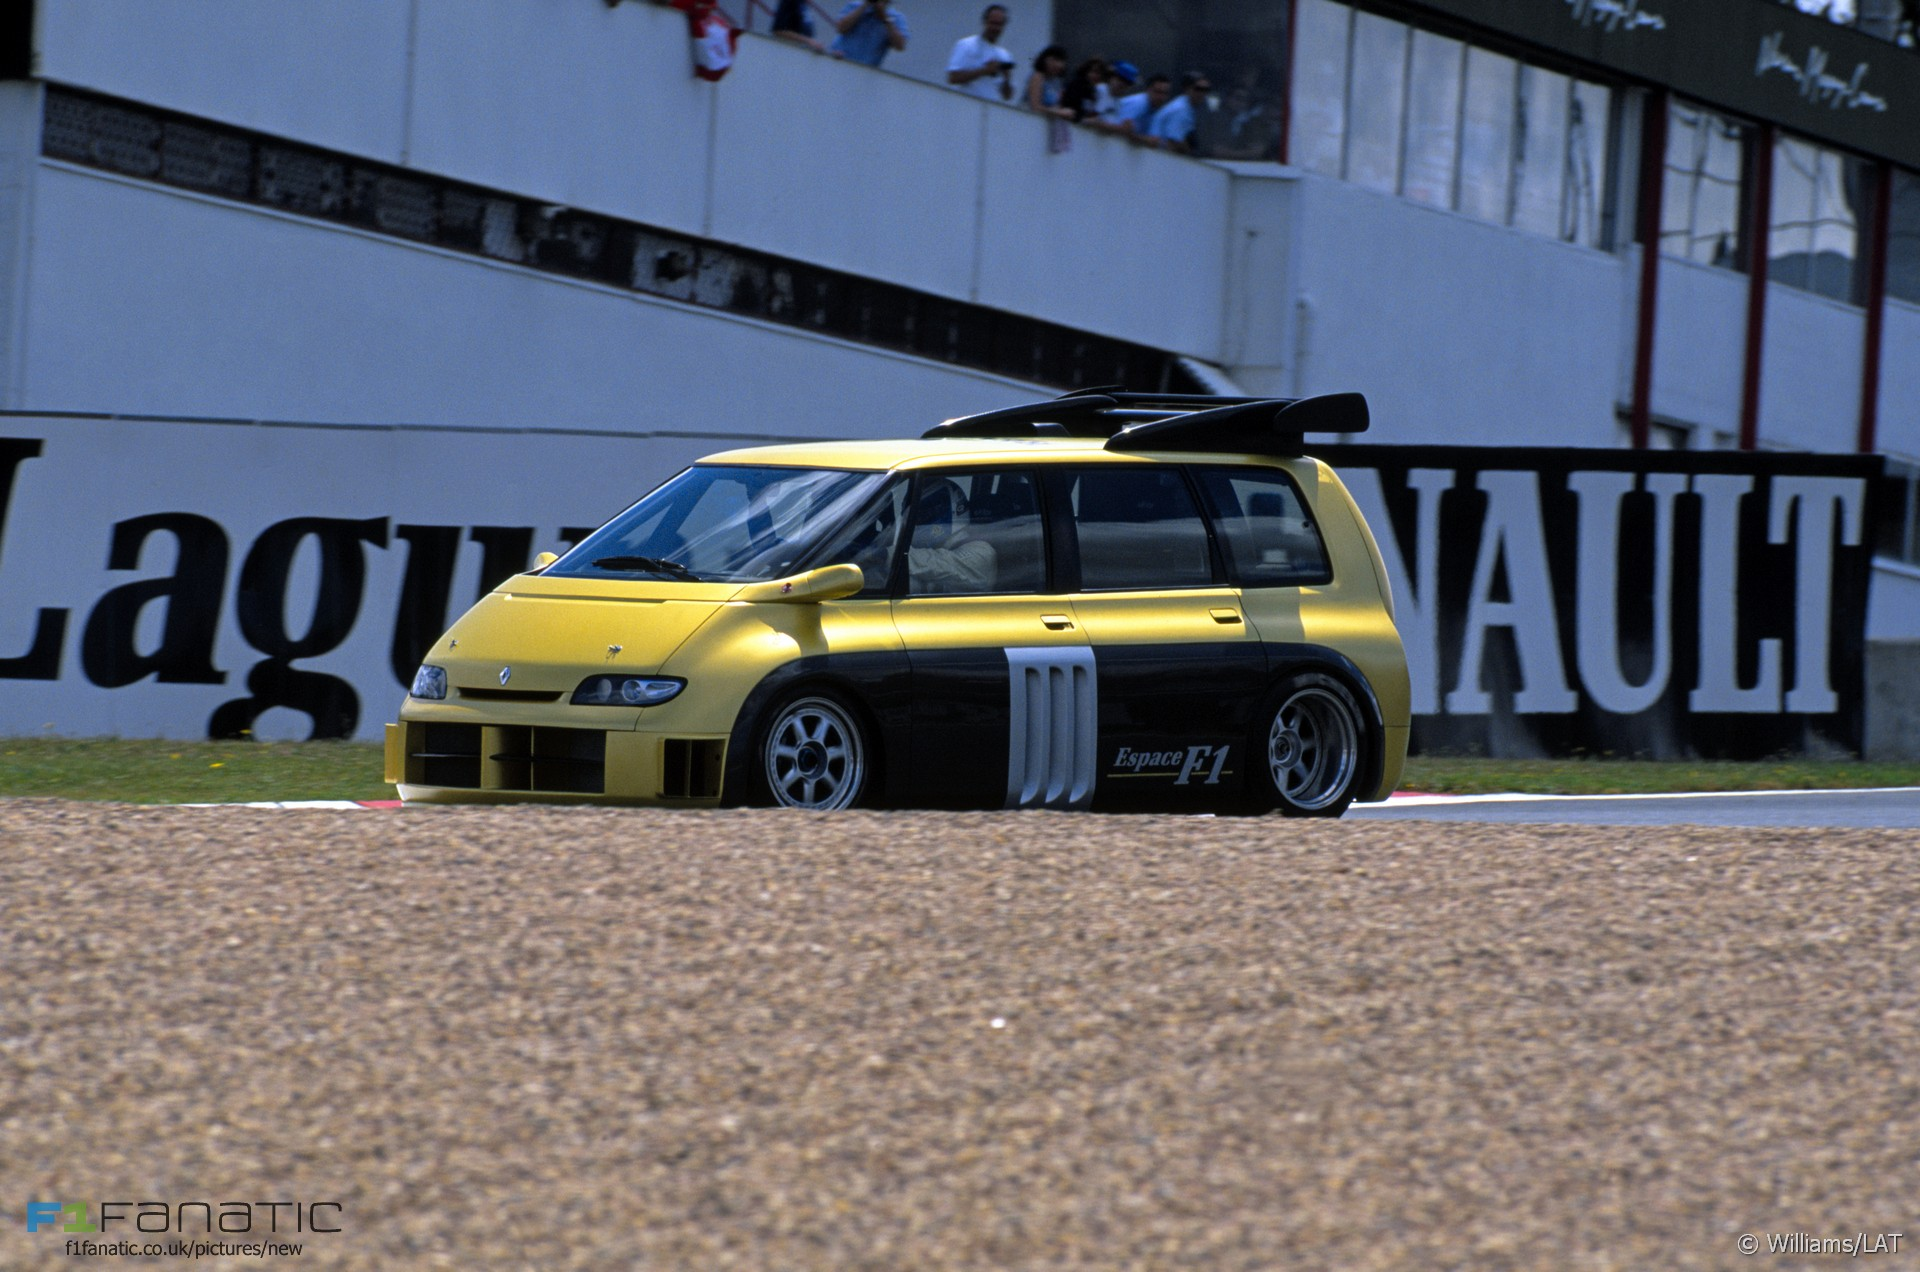 renault espace f1 magny cours 1995 f1 fanatic. Black Bedroom Furniture Sets. Home Design Ideas